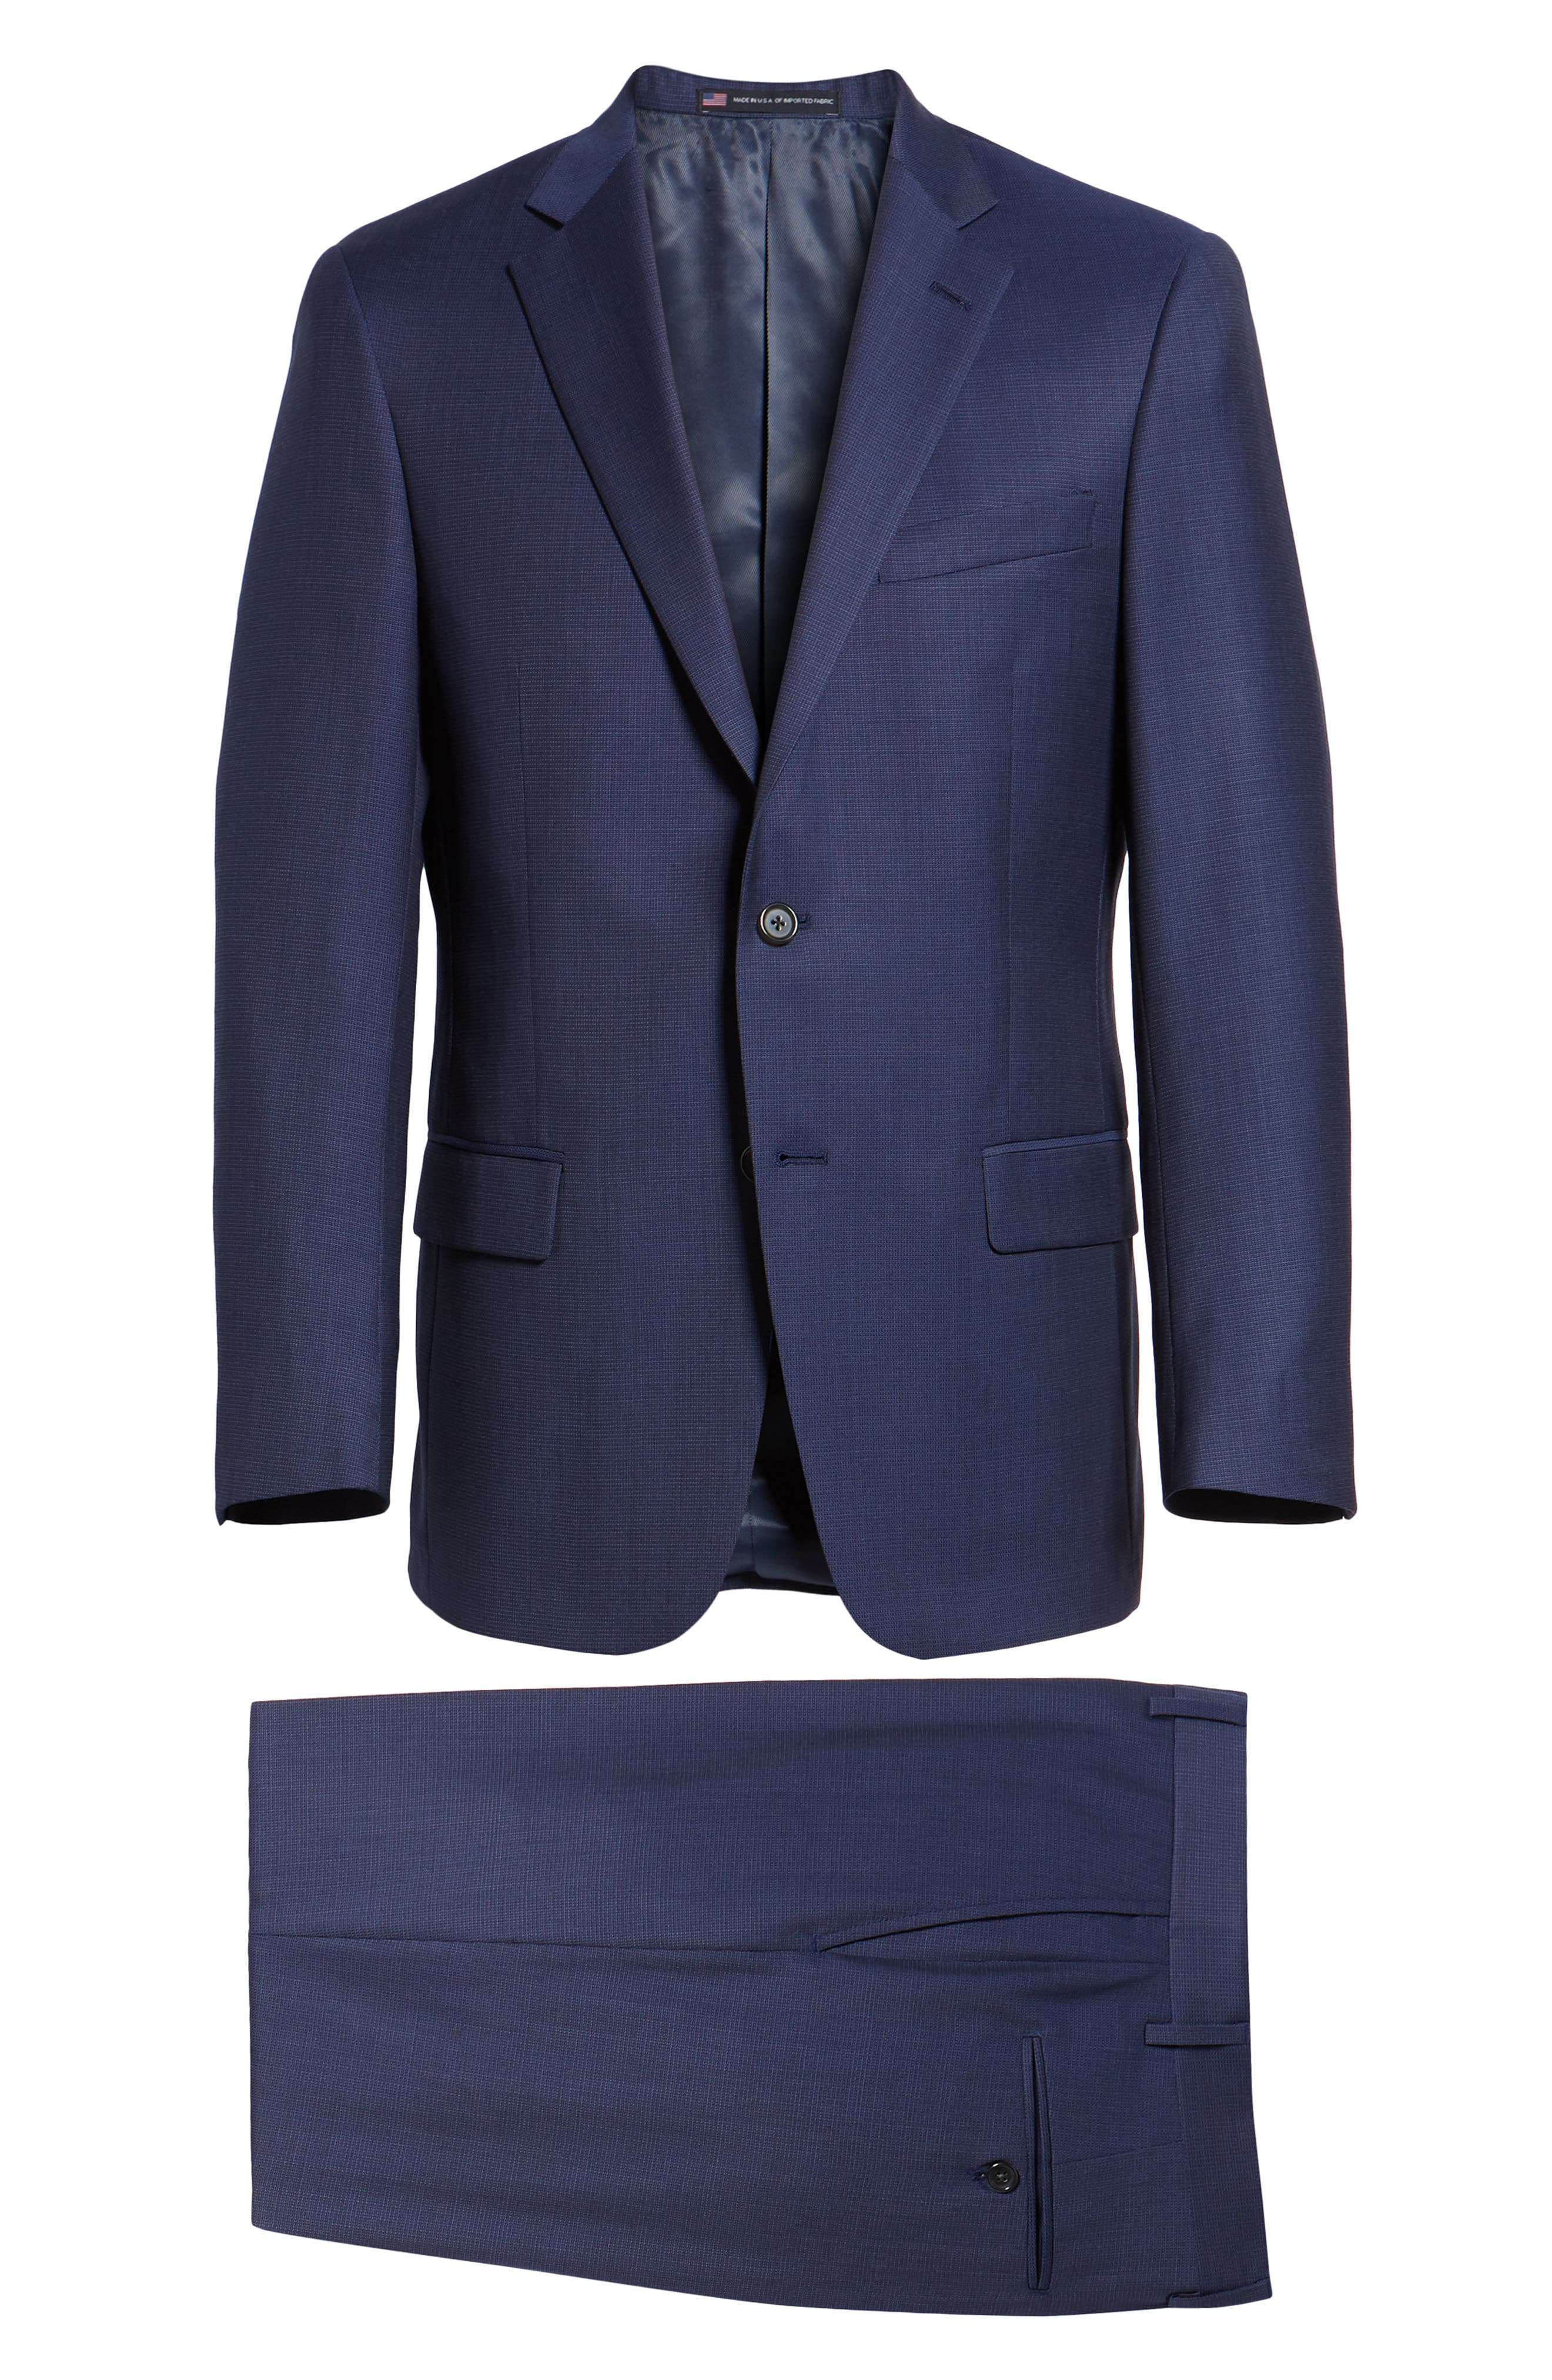 New York Classic Fit Check Wool Suit,                             Alternate thumbnail 8, color,                             MED BLUE